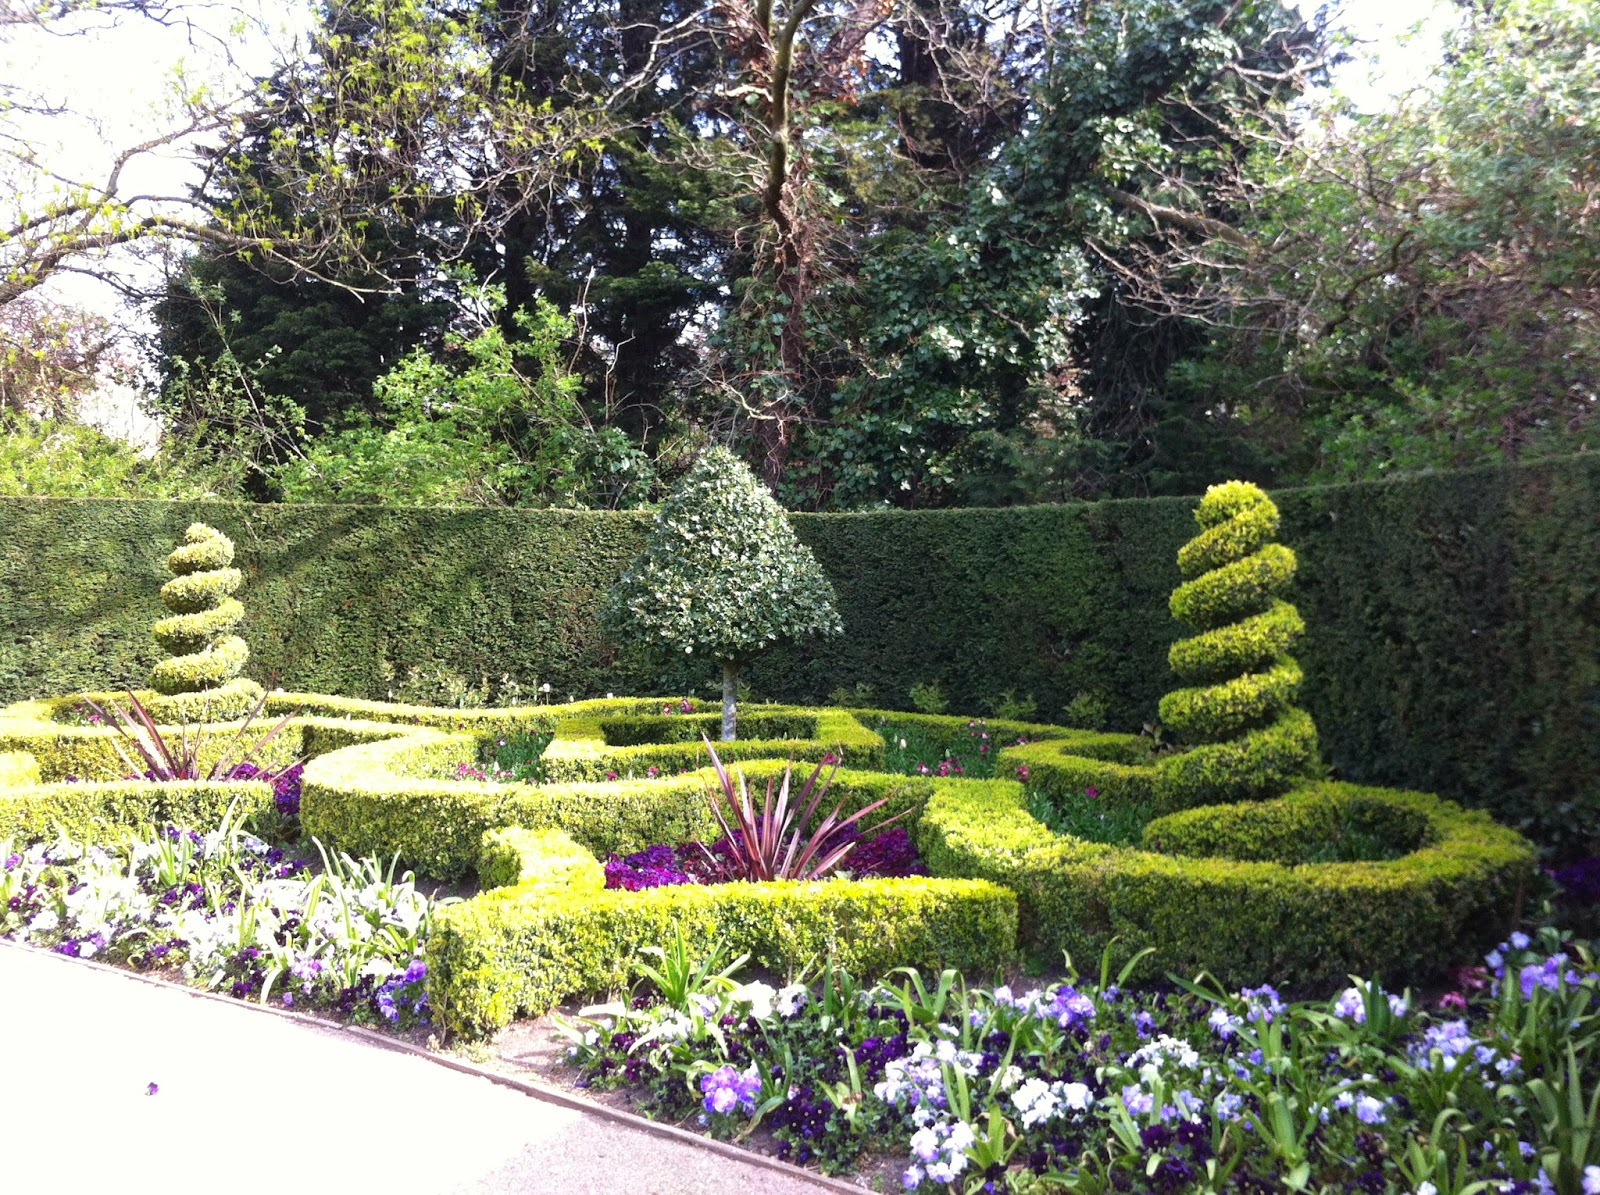 St. John's Lodge Garden, Regent's Park, London